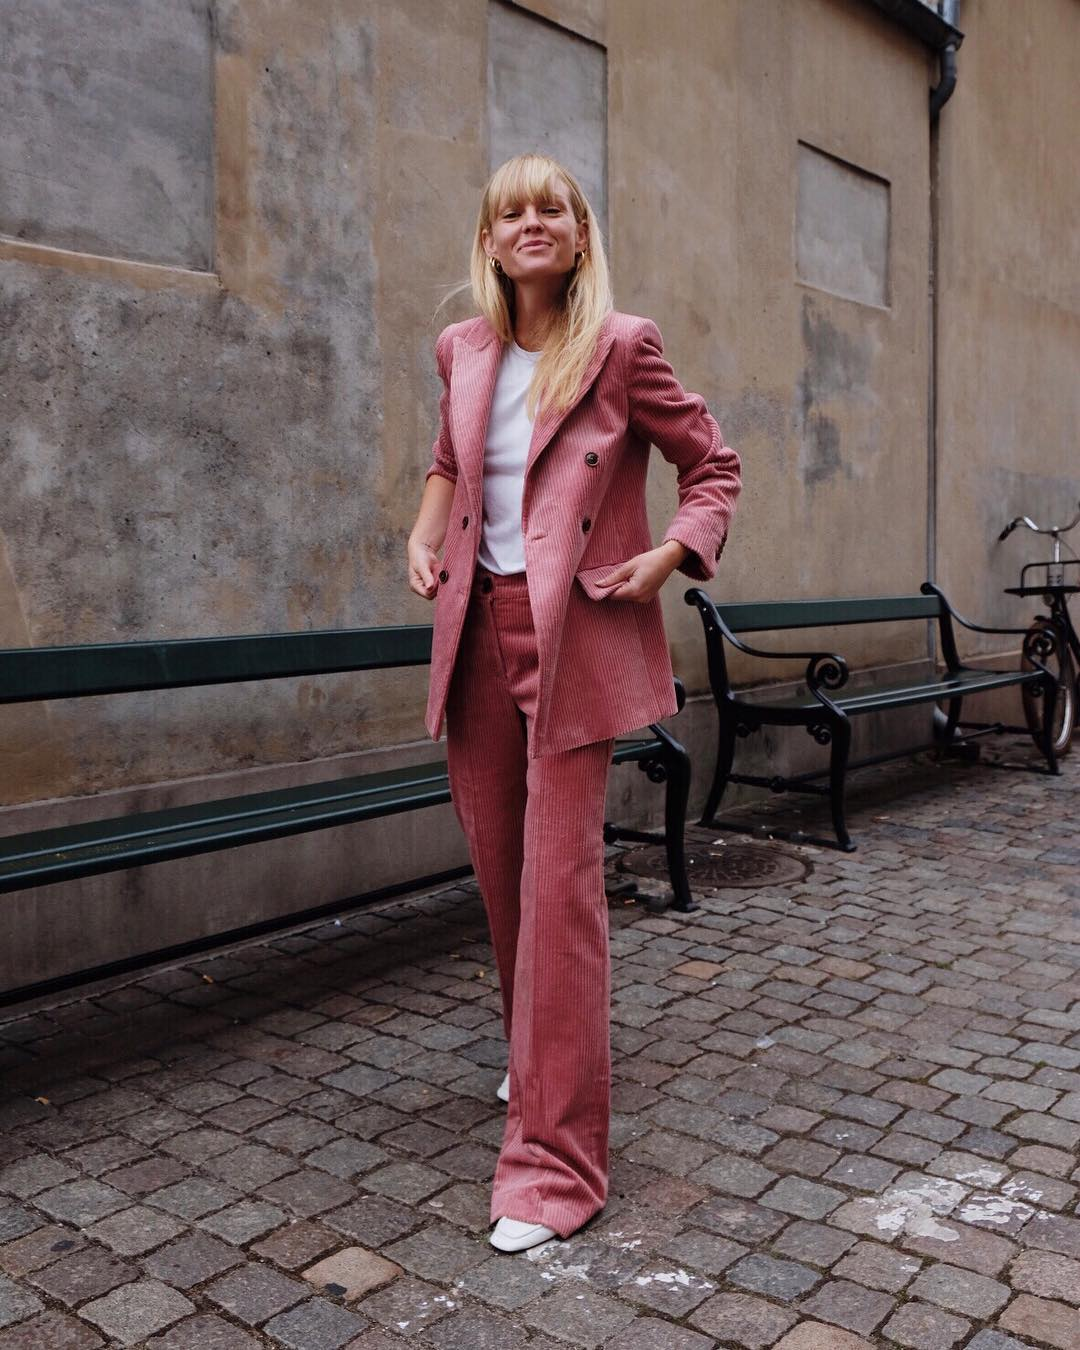 jeanette-madsen-mango-pink-corduroy-suit